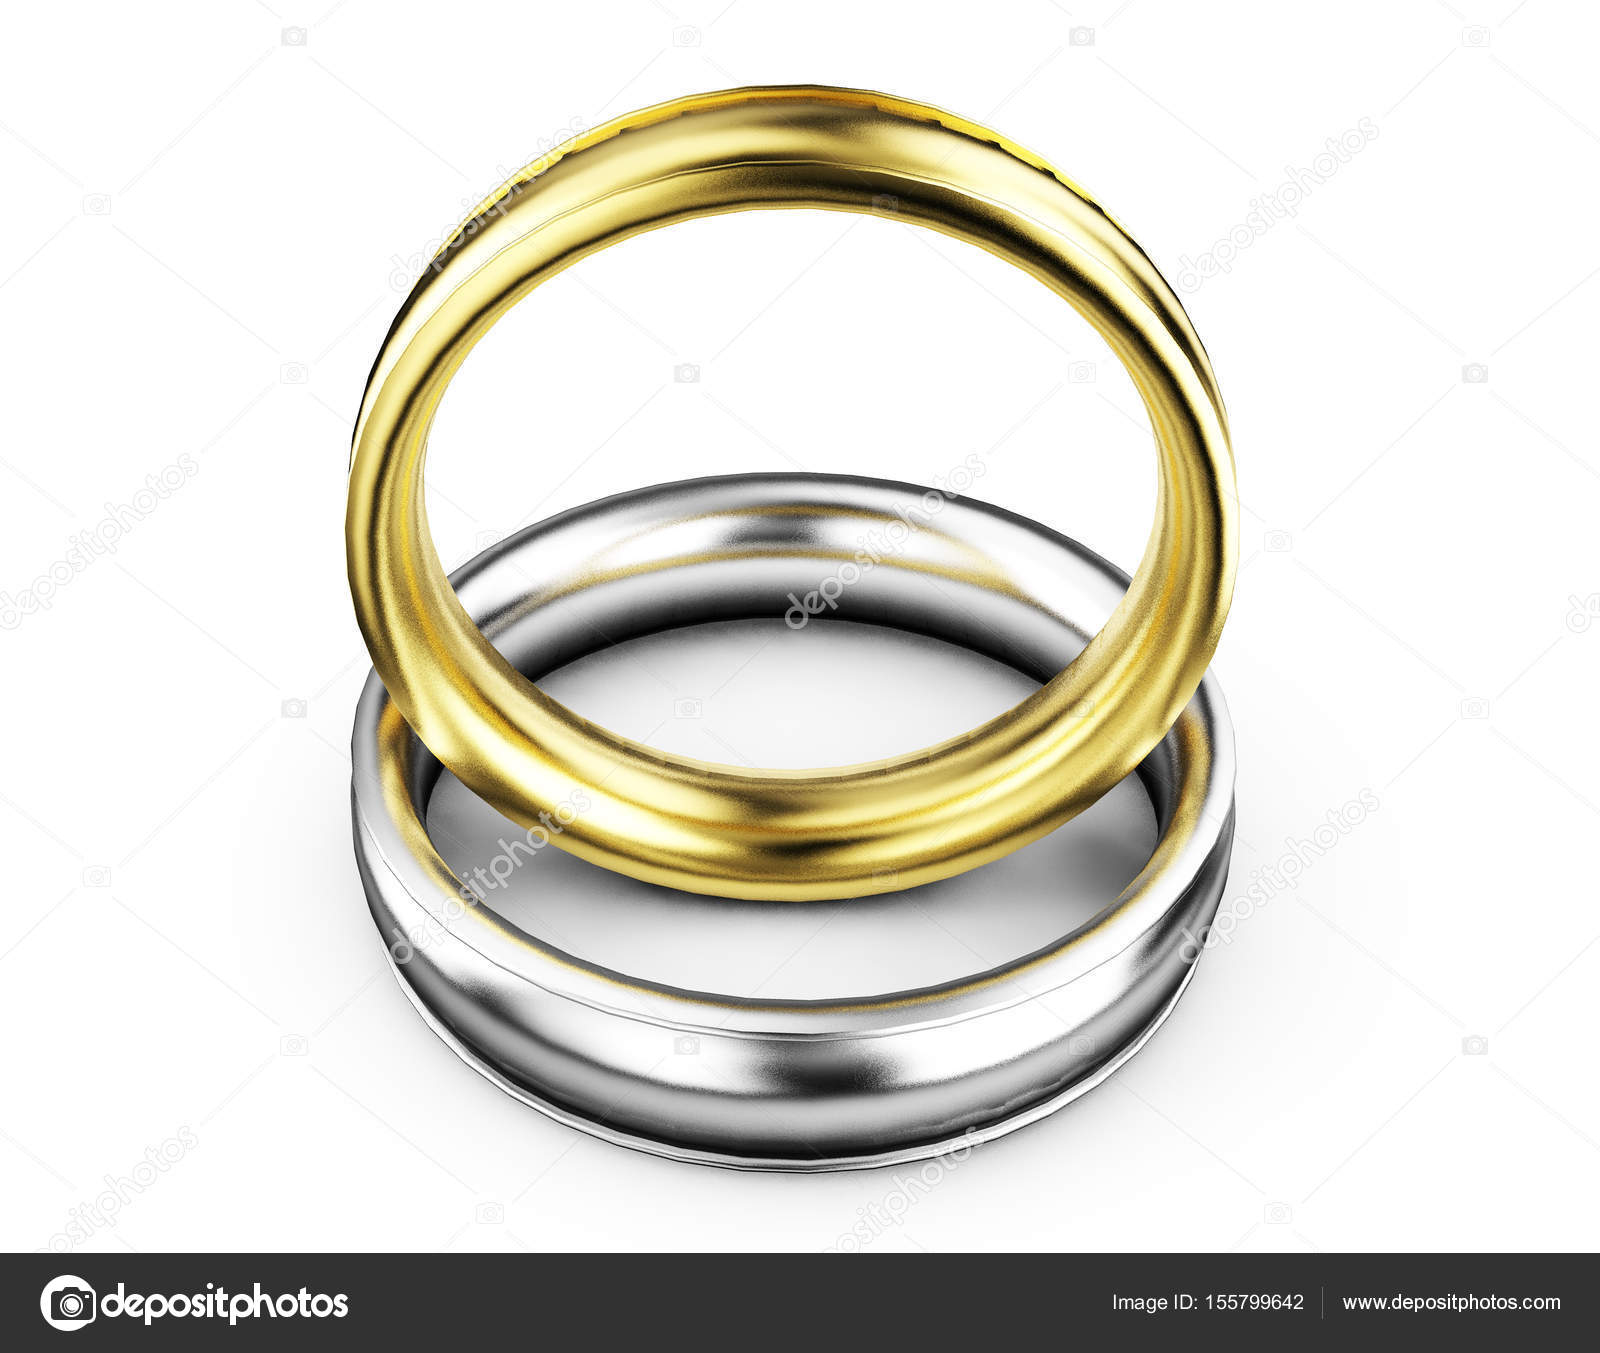 of gold two symbol depositphotos couple vector rings on golden stock marriage illustration isolated